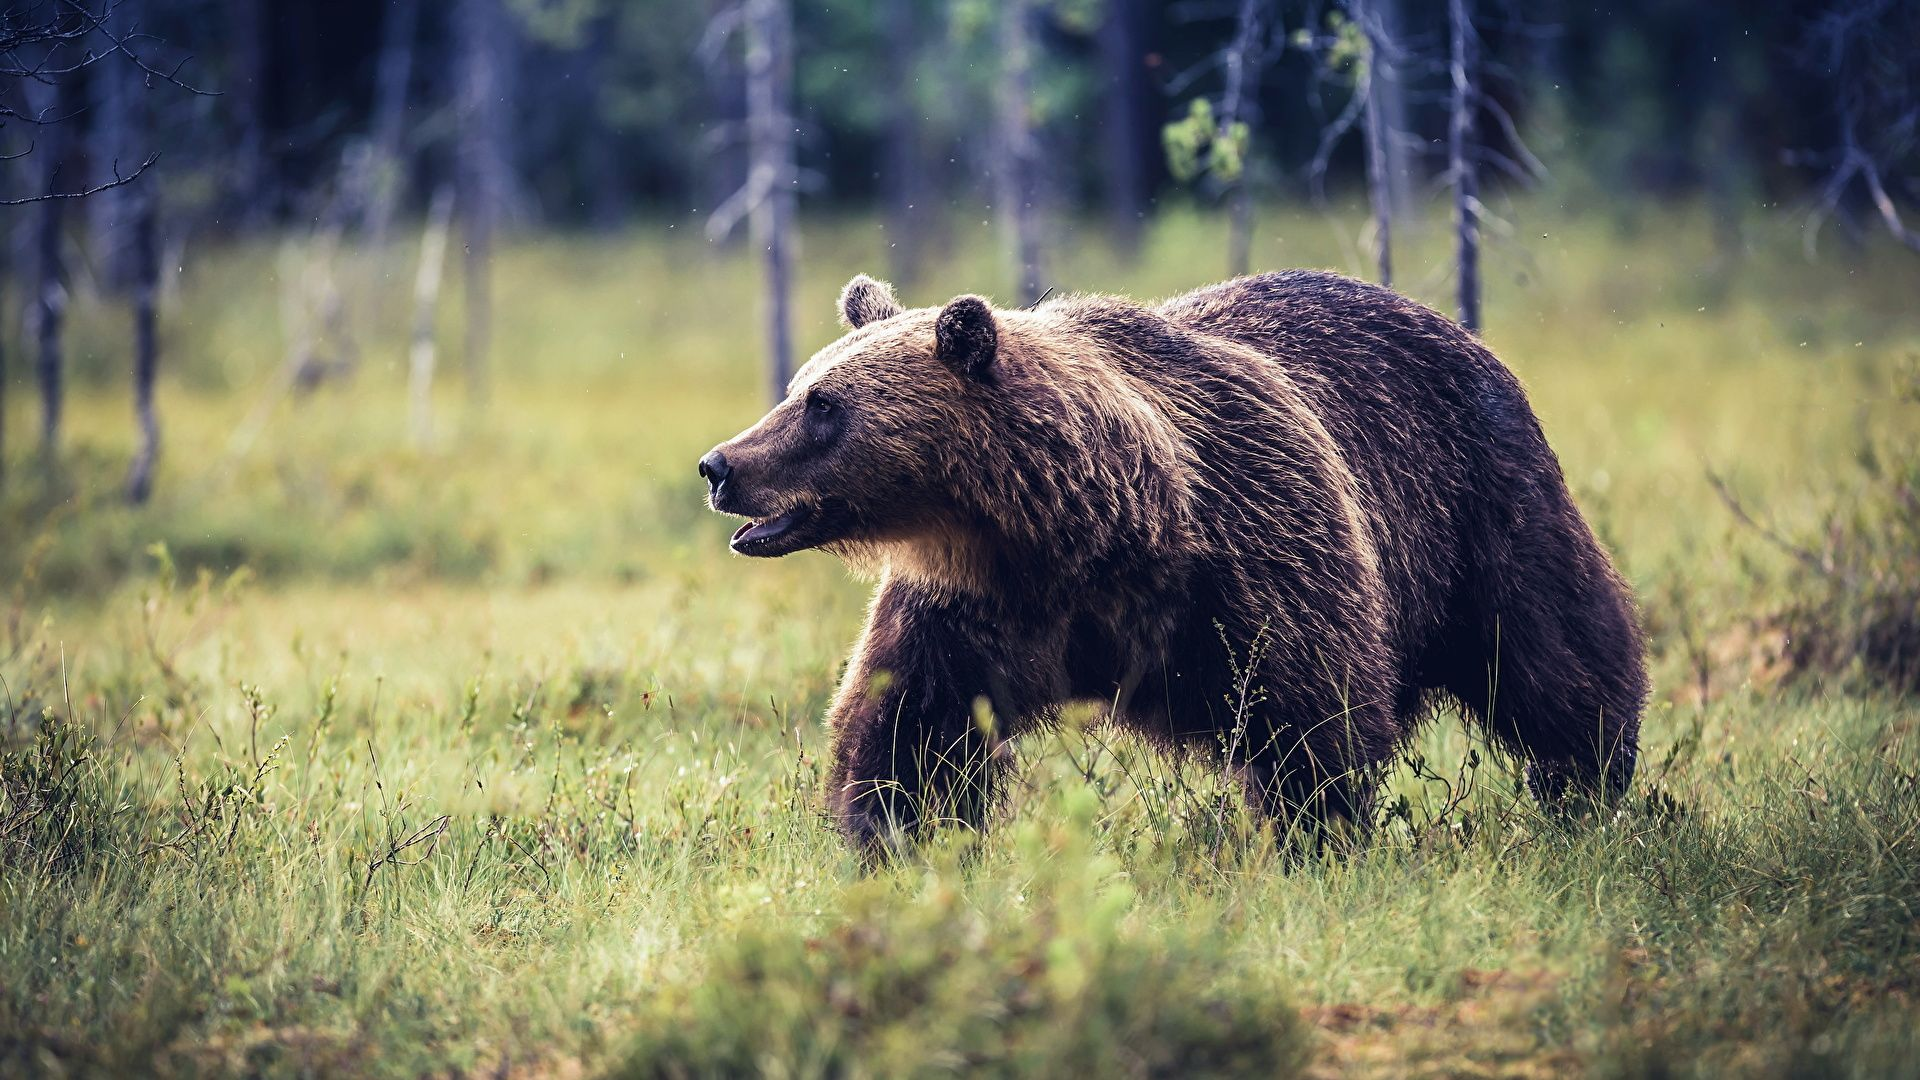 Brown Bear In Nature Photo